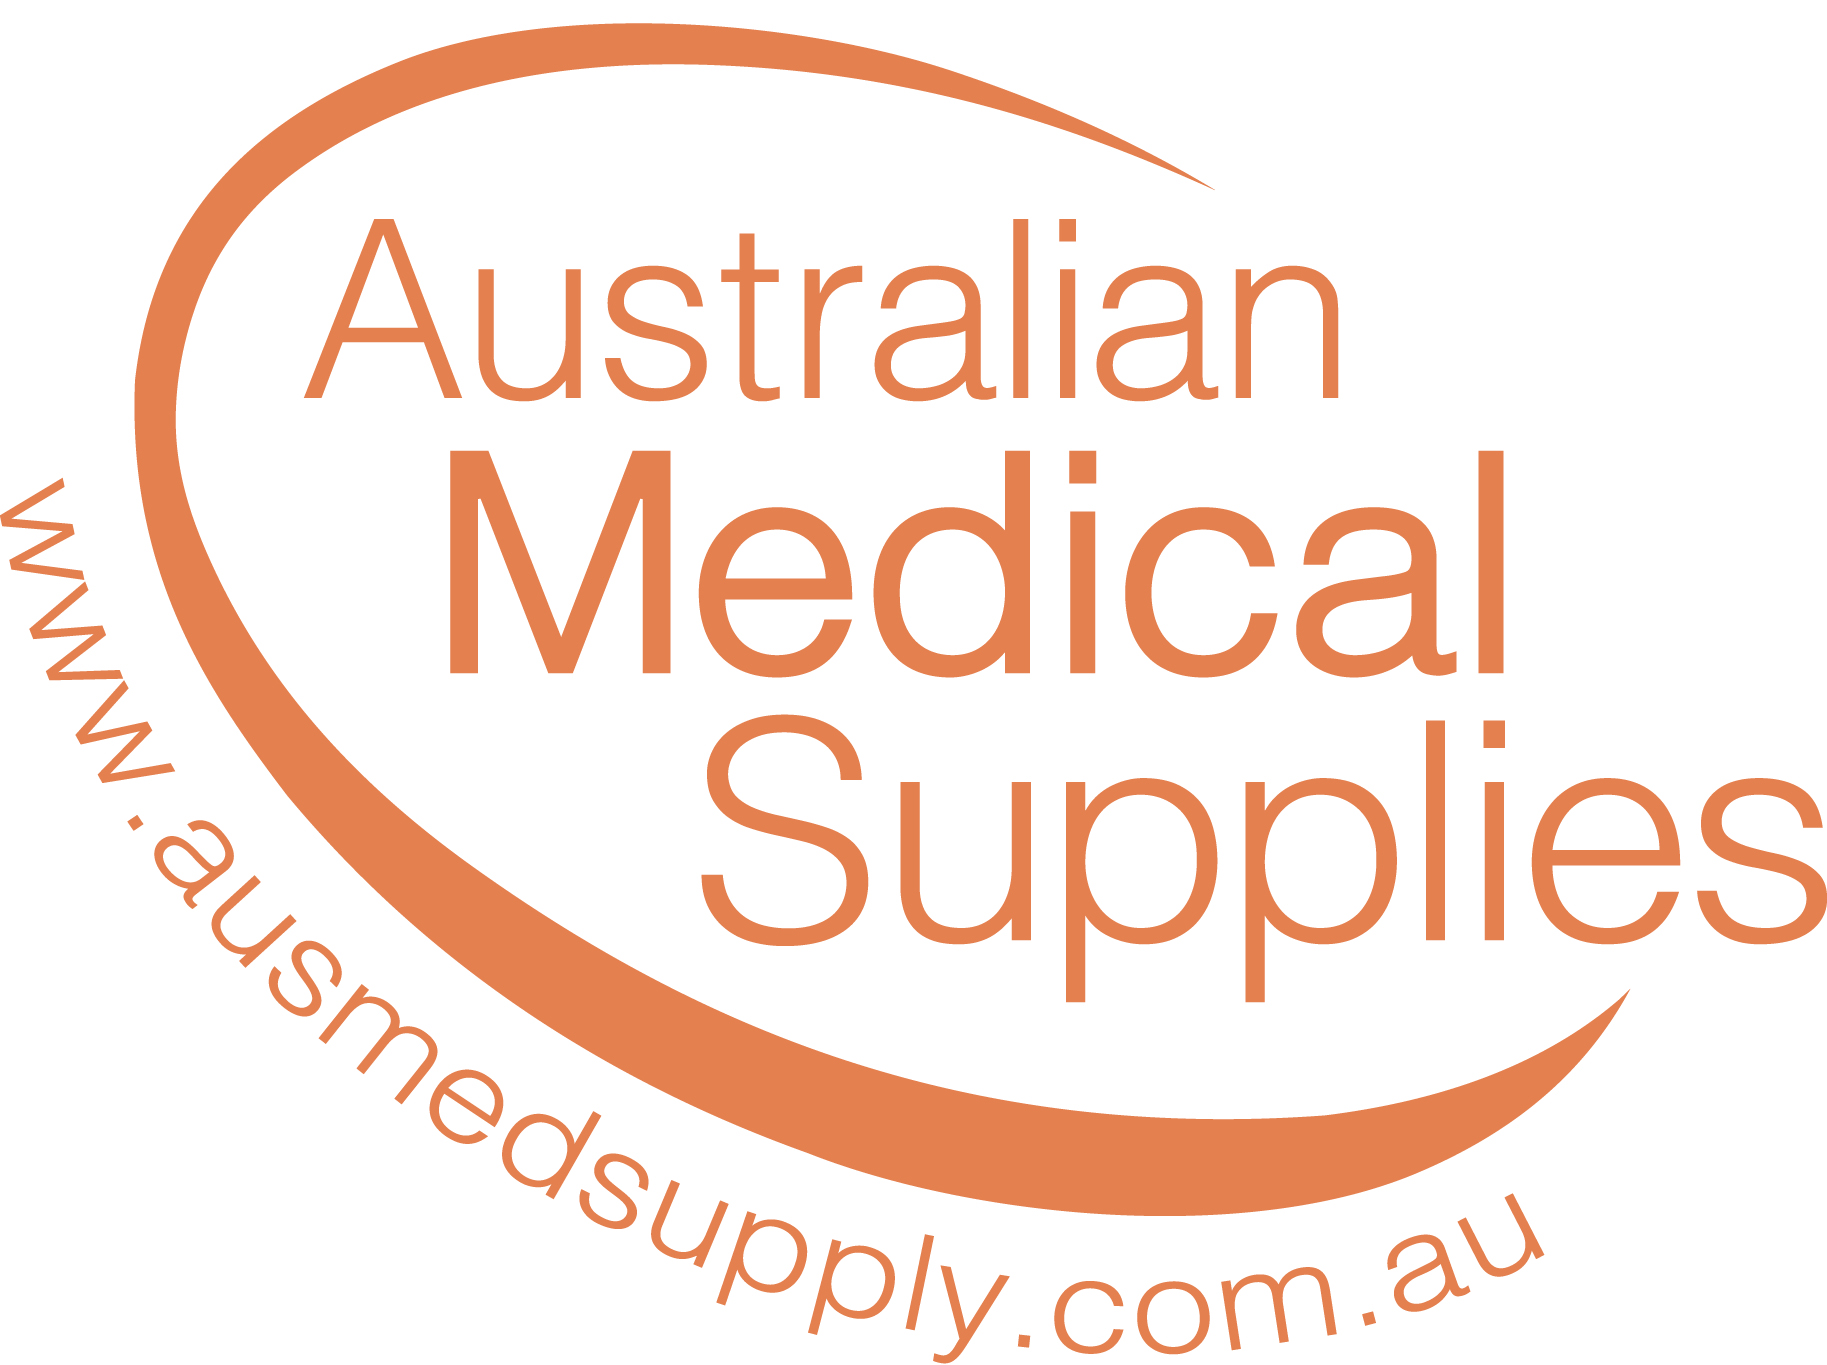 Australian Medical Supplies FINAL 1 JPEG